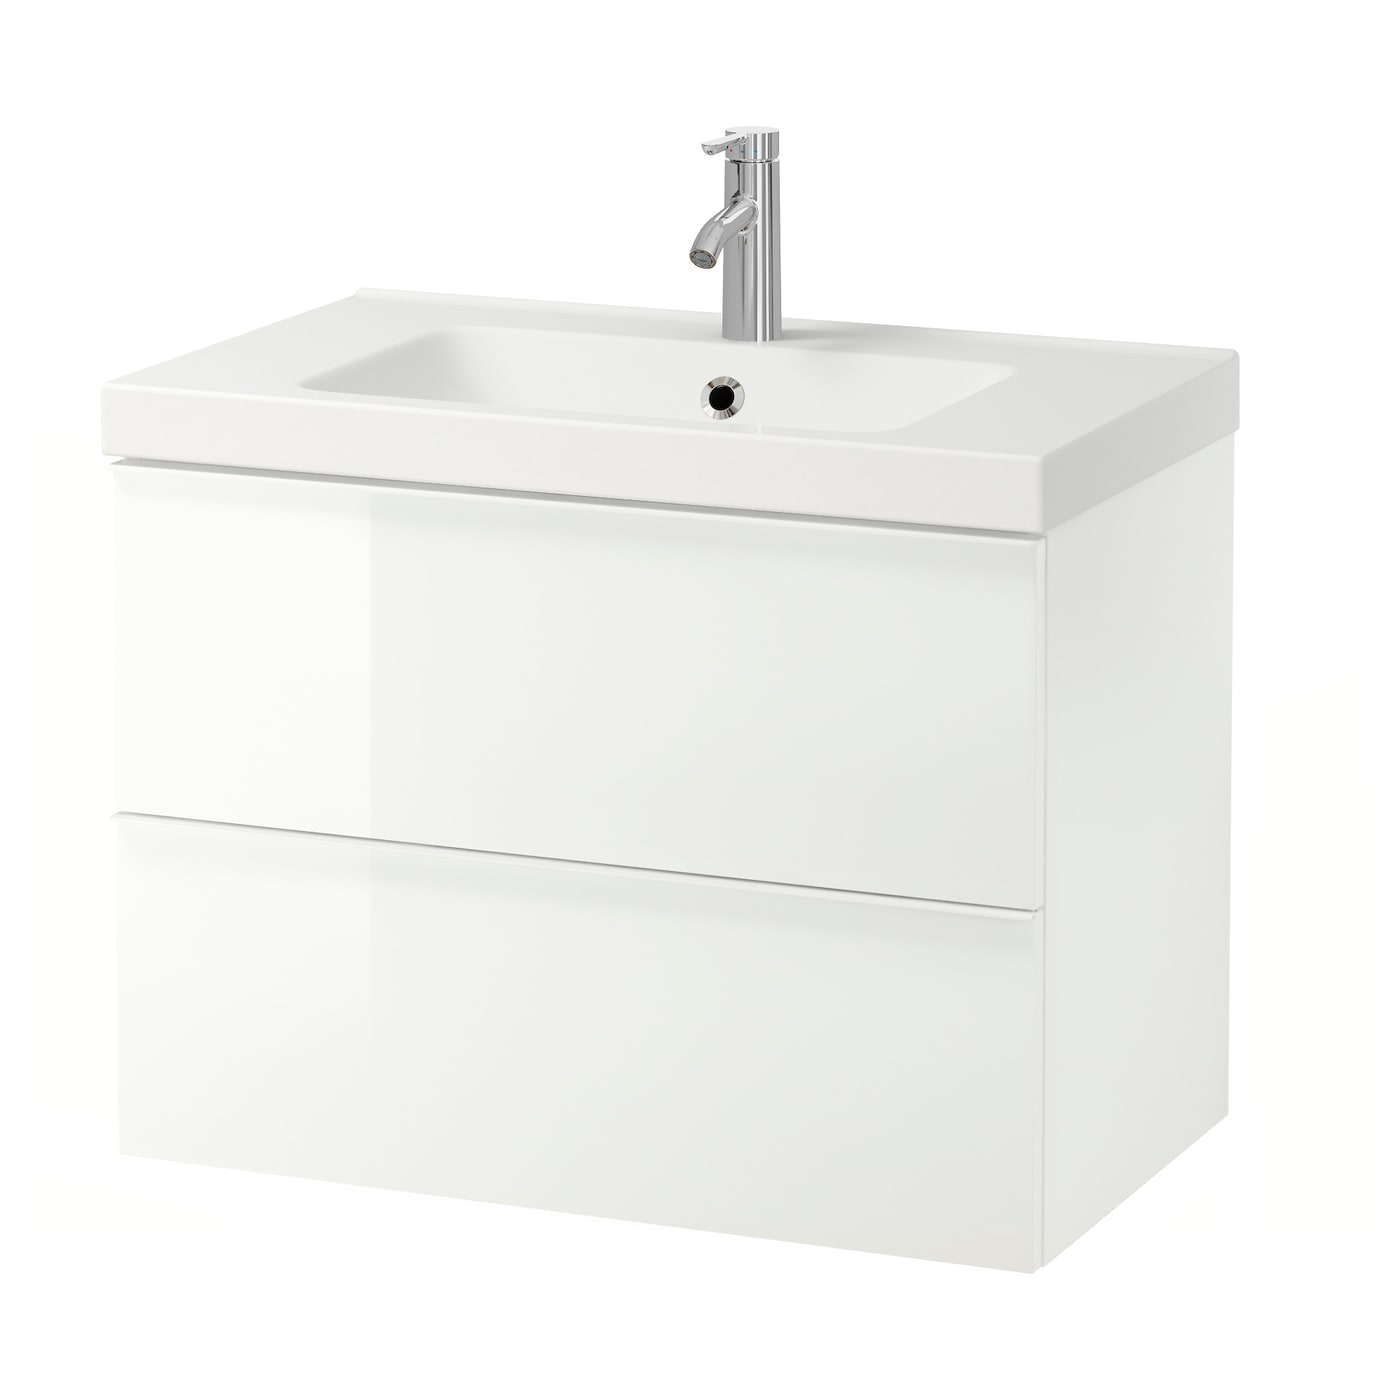 odensvik godmorgon meuble lavabo 2tir brillant blanc 83x49x64 cm ikea. Black Bedroom Furniture Sets. Home Design Ideas